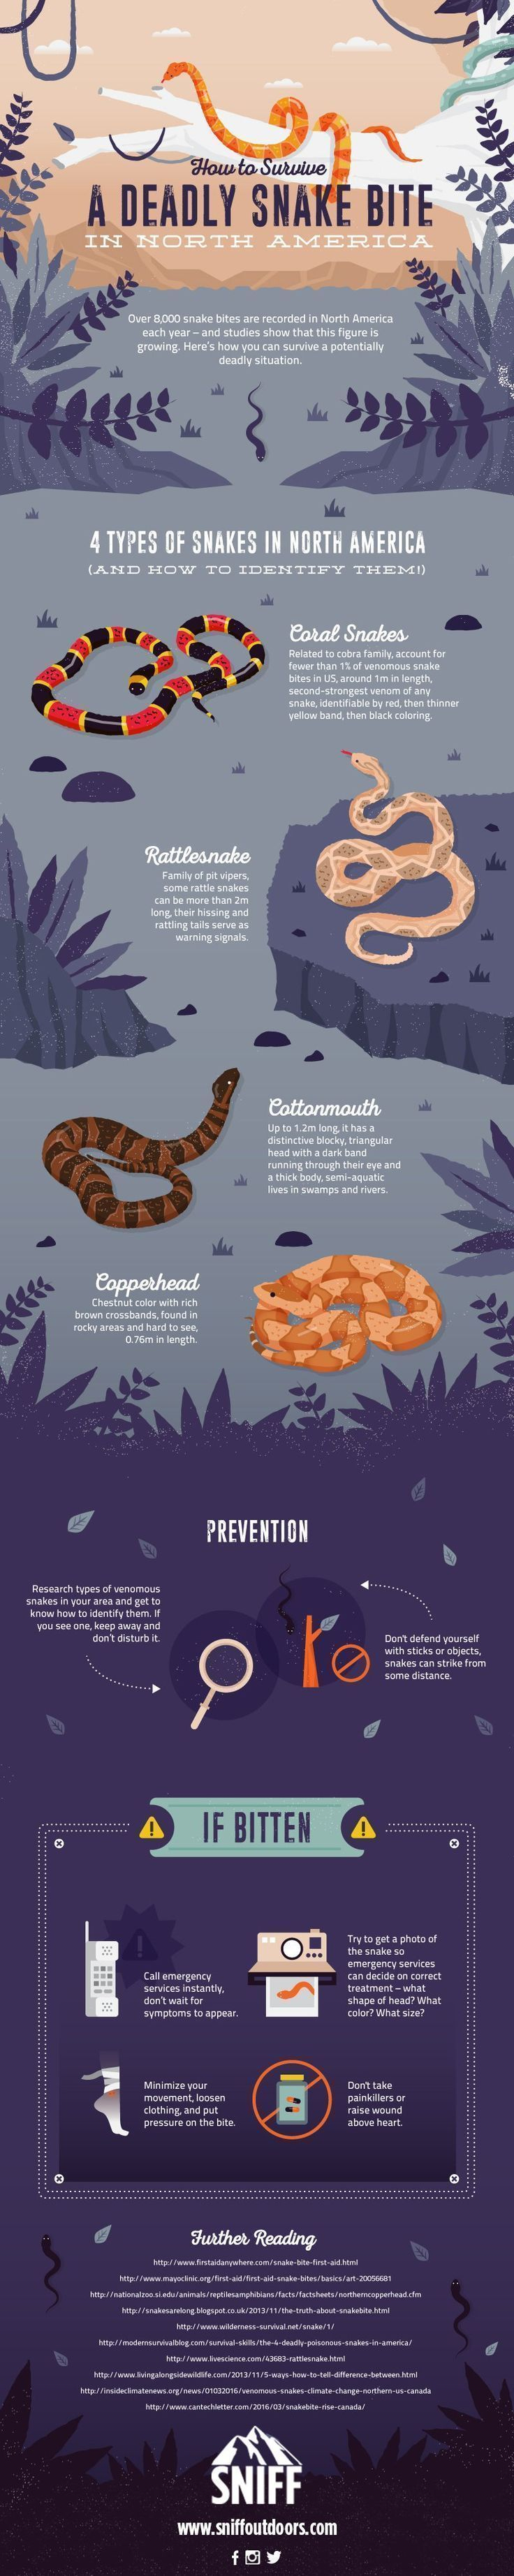 Survive Snake Bites with This Helpful Infographic | How To Identify and What to do if you encounter a Poisonous Snake, check it out at http://survivallife.com/snake-bites-infographic/ #WildernessSurvival